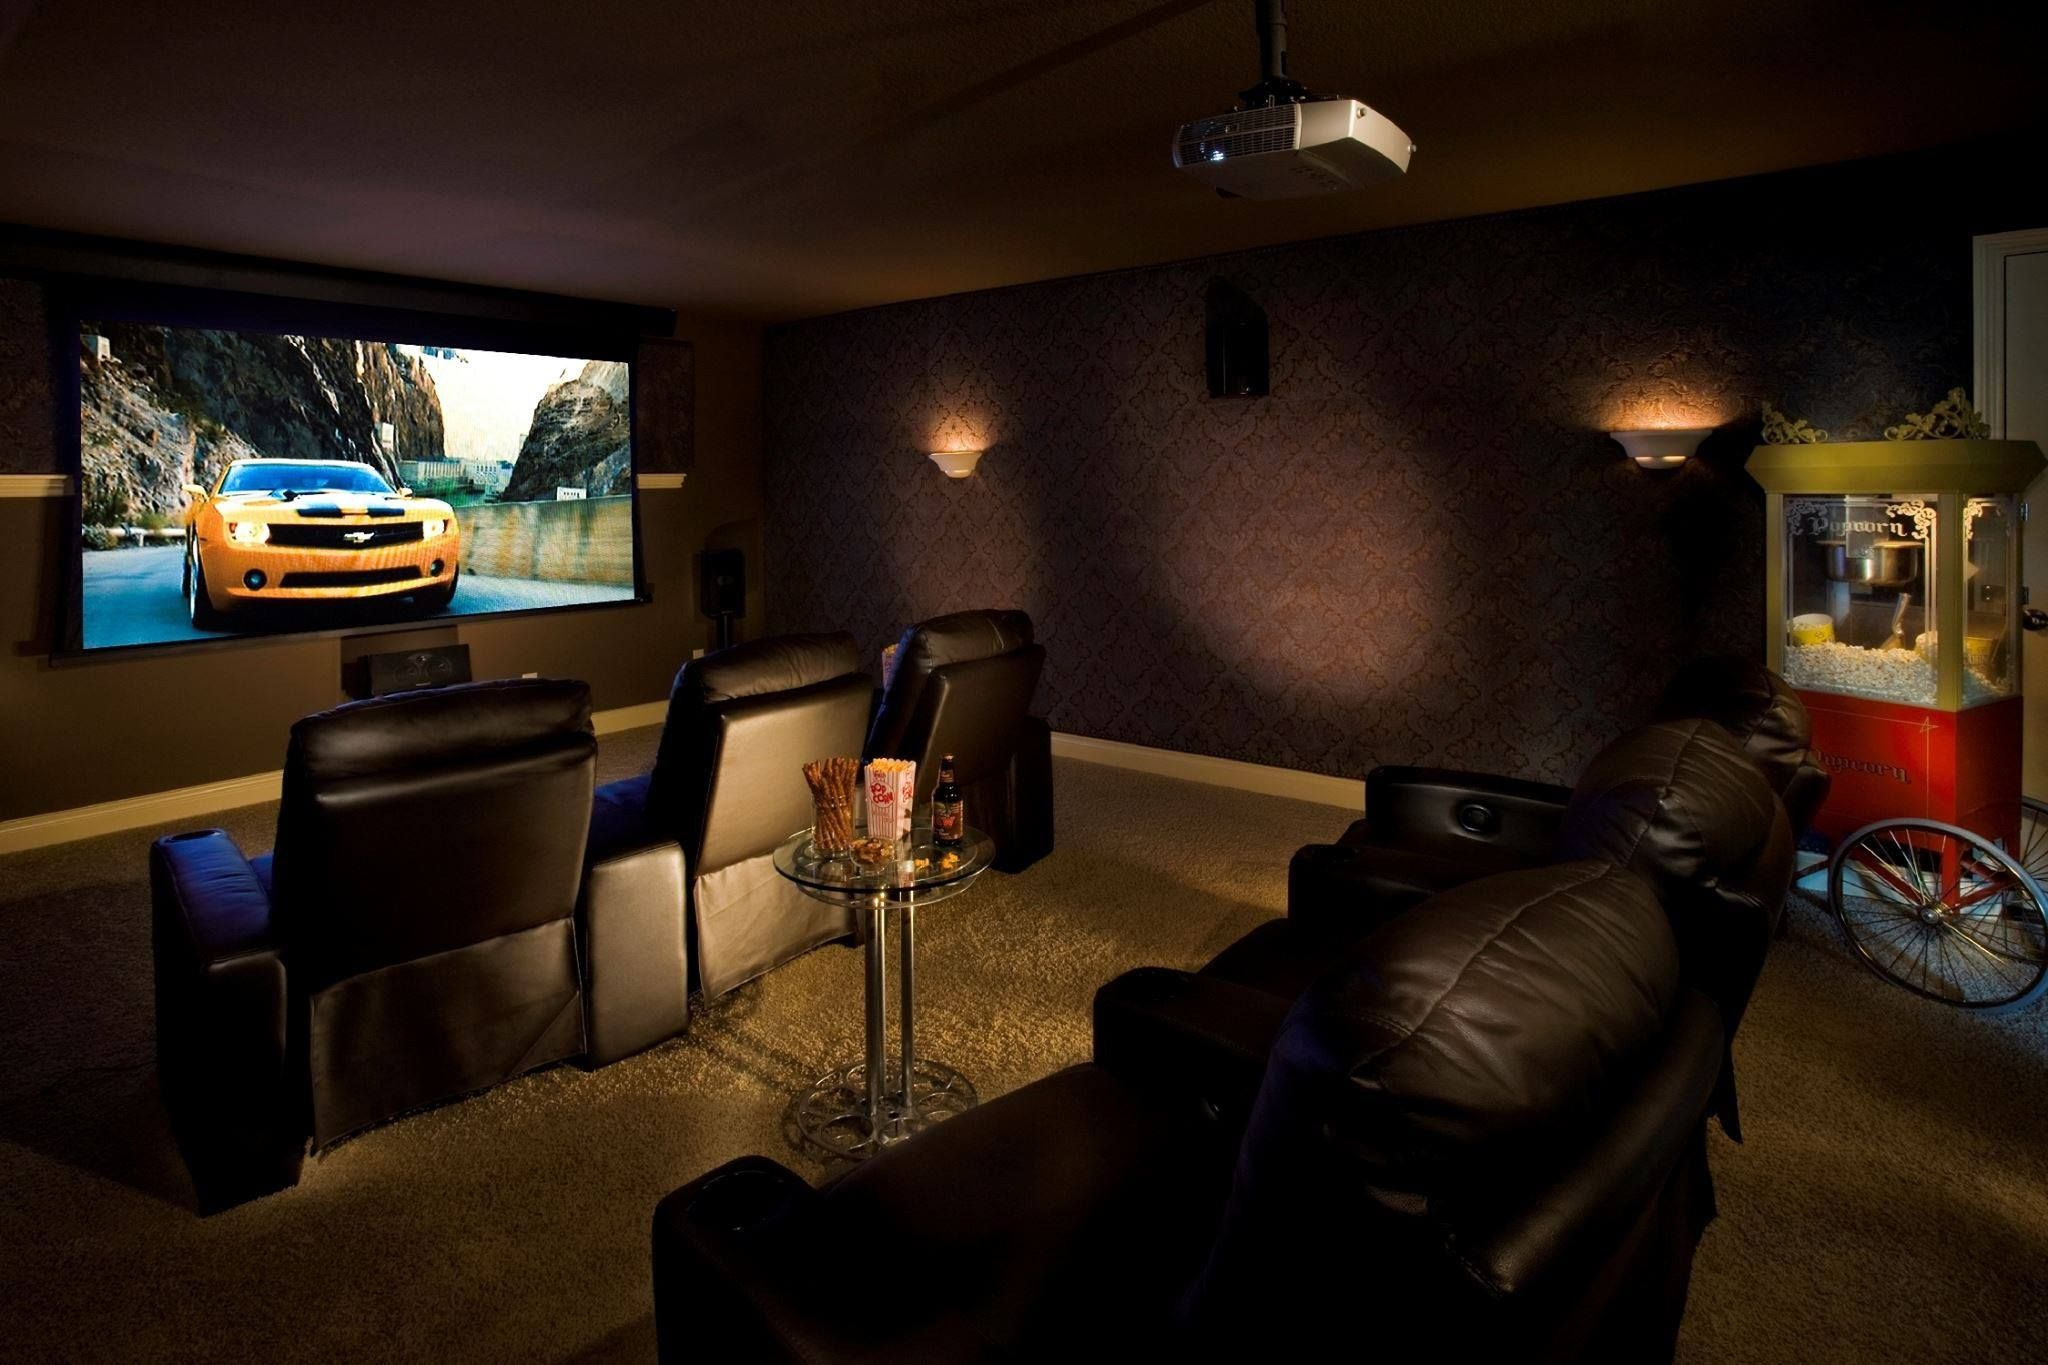 How to make home theater room - Make Your Family Room Or Man Cave The Best Room In The House With Reclining Theater